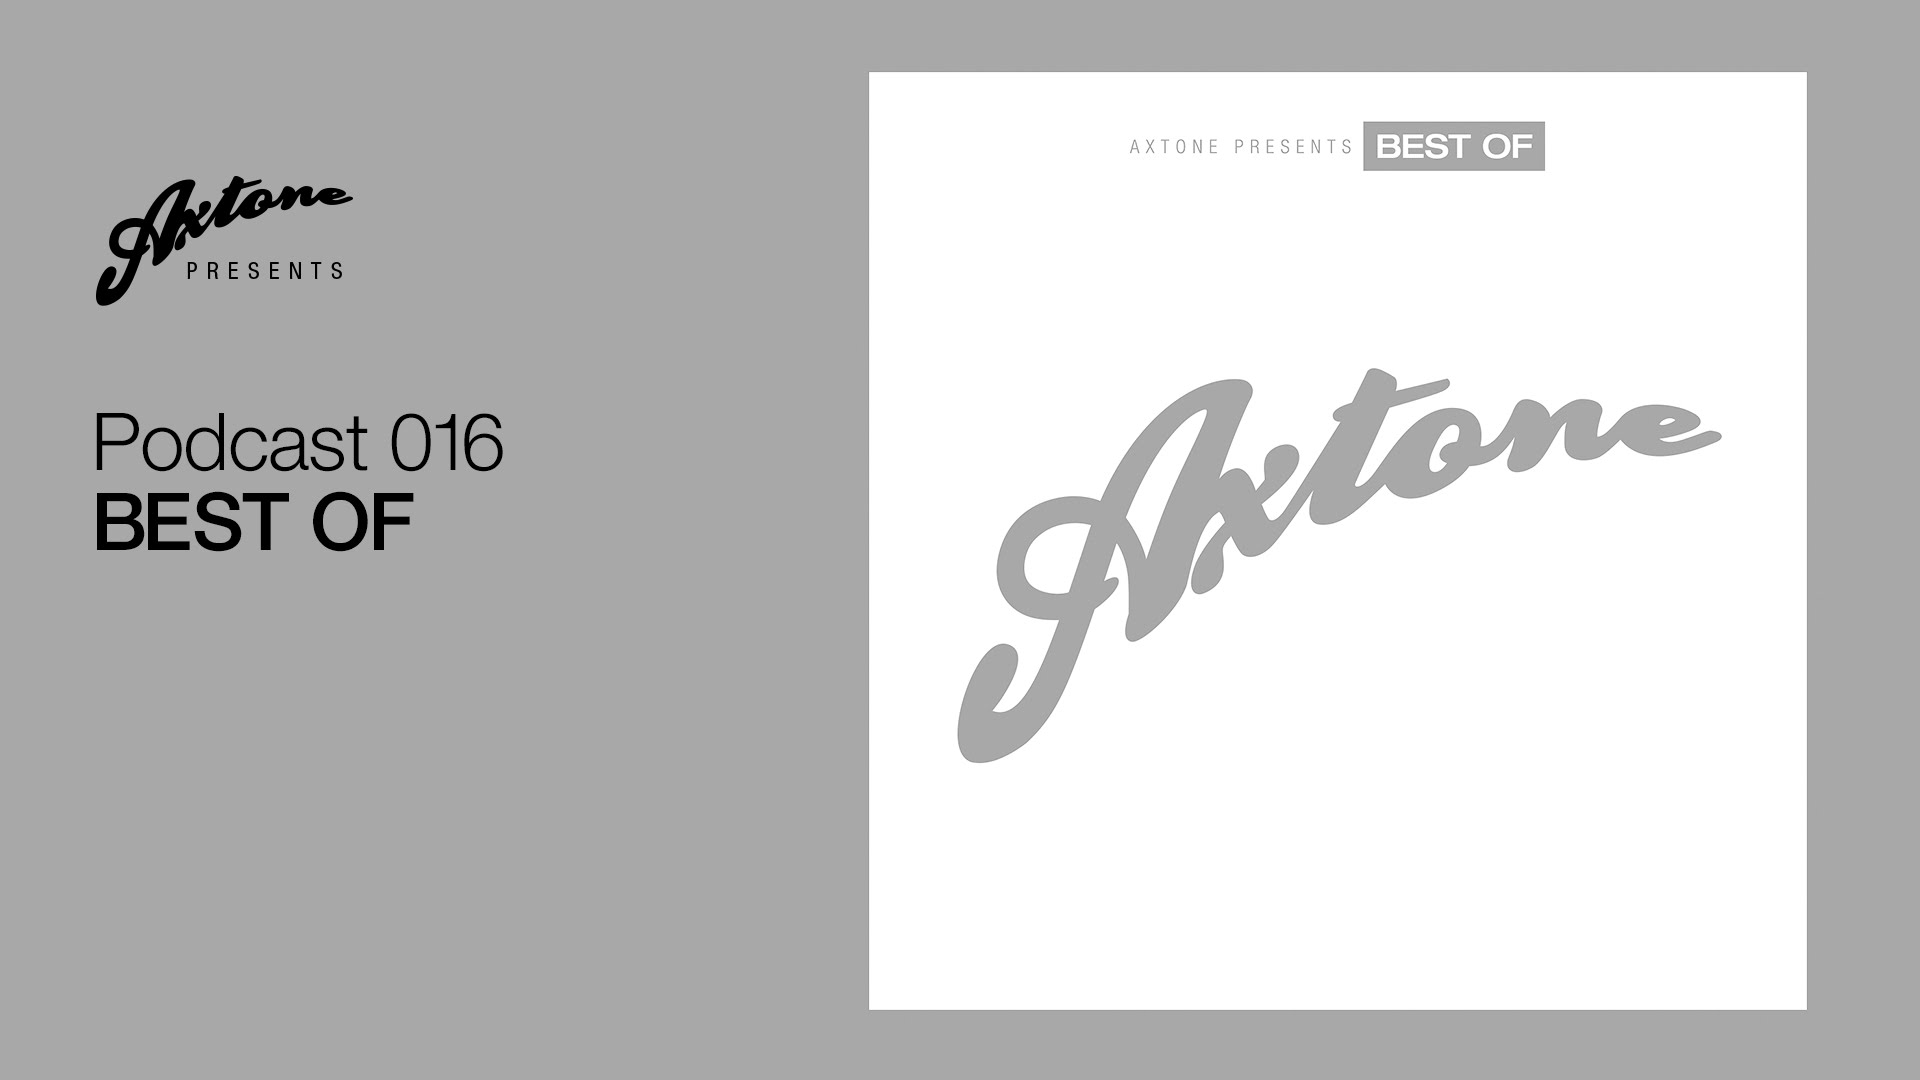 Axtone Presents Best Of